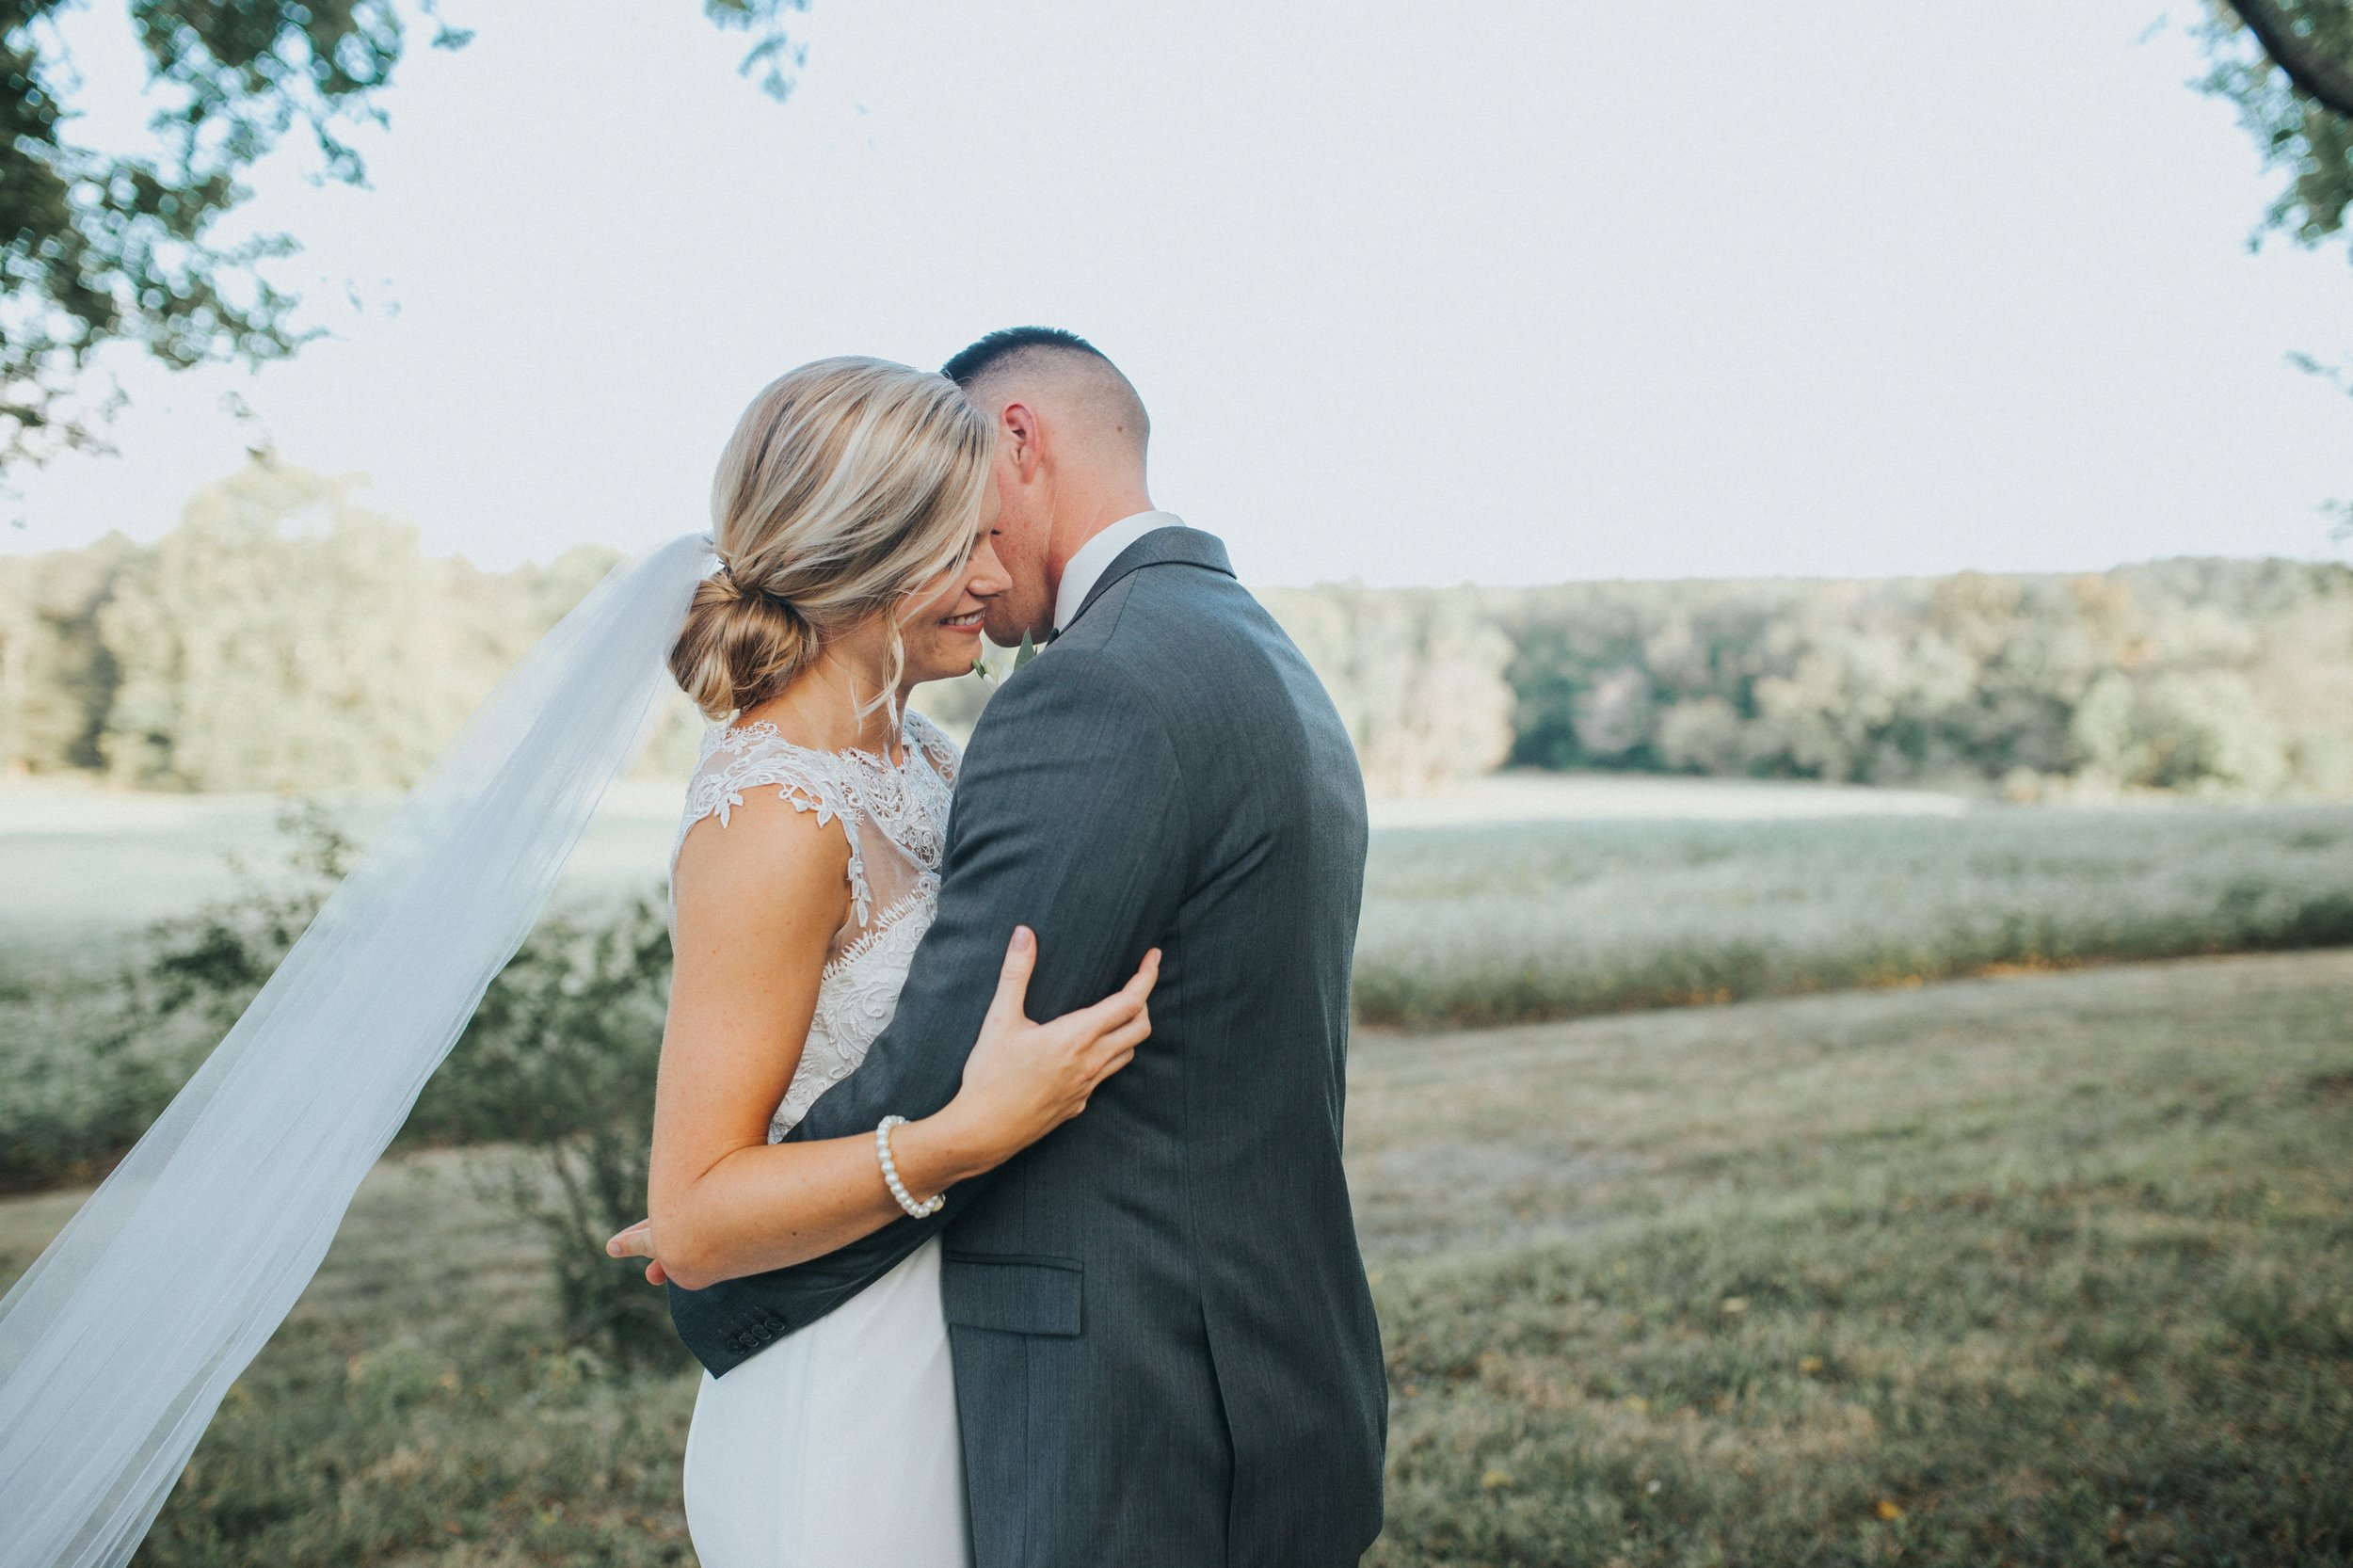 Virginia wedding photographer, Charlottesville wedding photographer, the hunt at Selma wedding, amelia virginia wedding photographer_0214.jpg